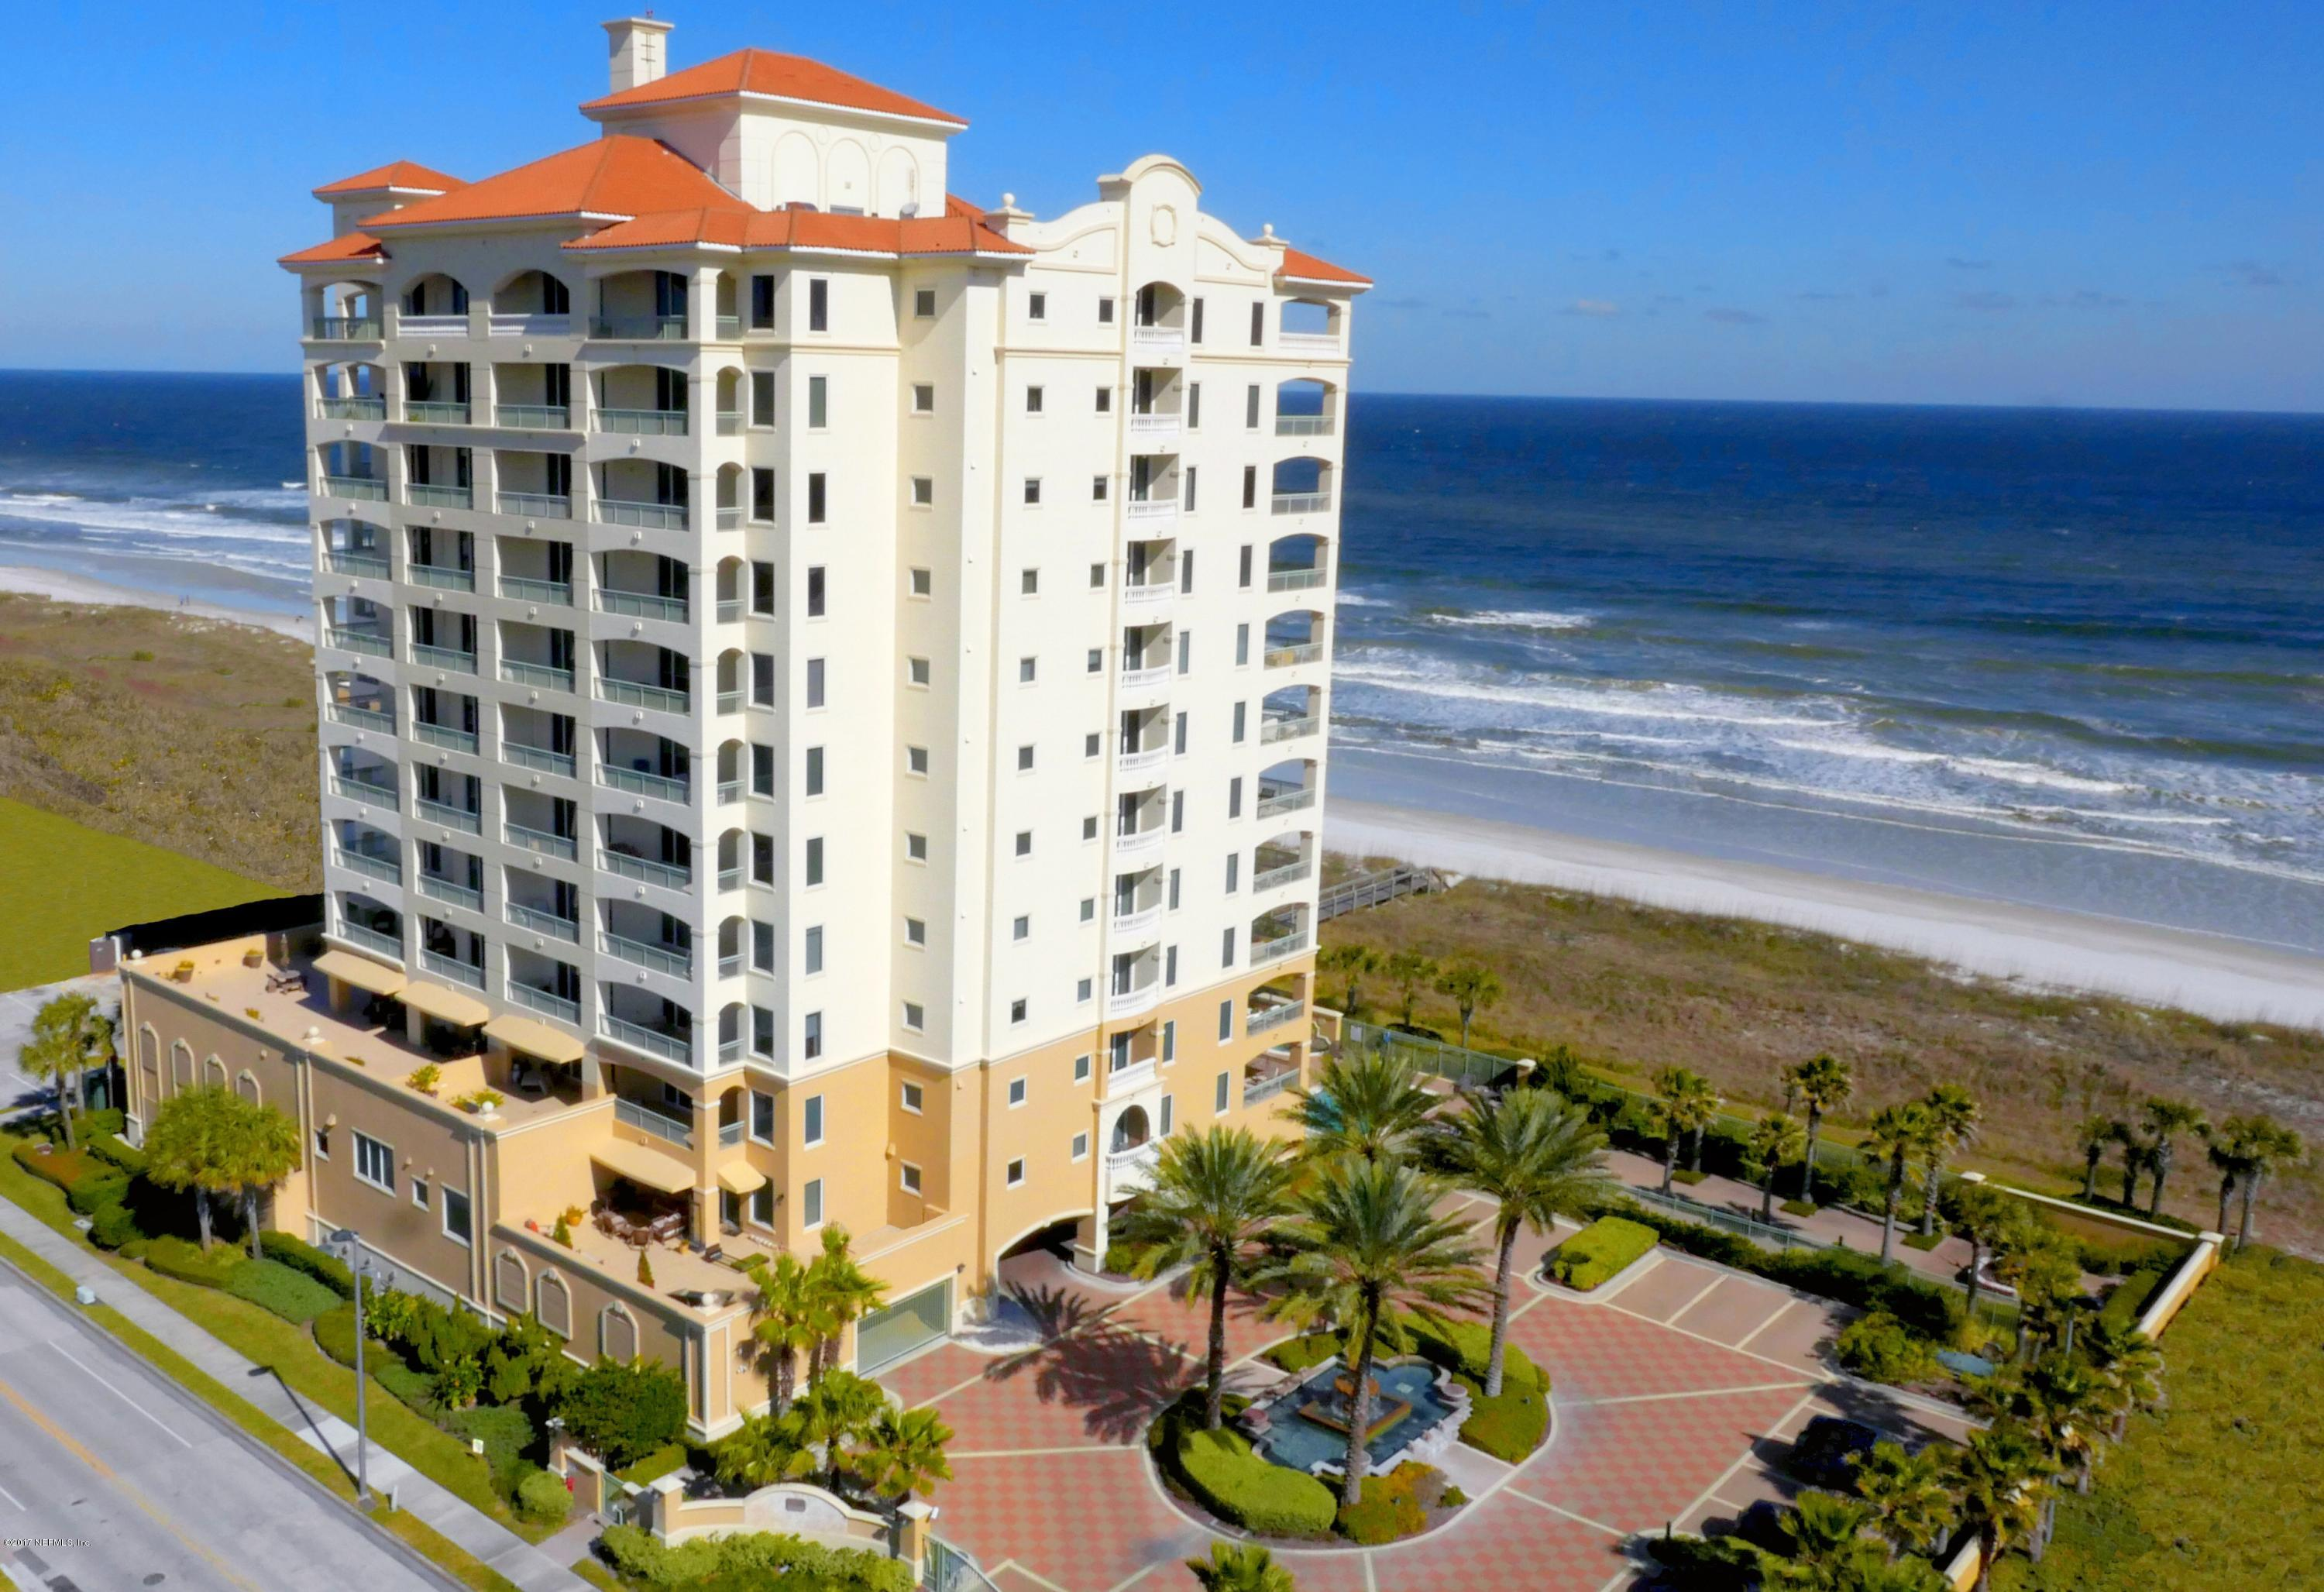 917 1ST, JACKSONVILLE BEACH, FLORIDA 32250, 3 Bedrooms Bedrooms, ,3 BathroomsBathrooms,Residential - condos/townhomes,For sale,1ST,912781